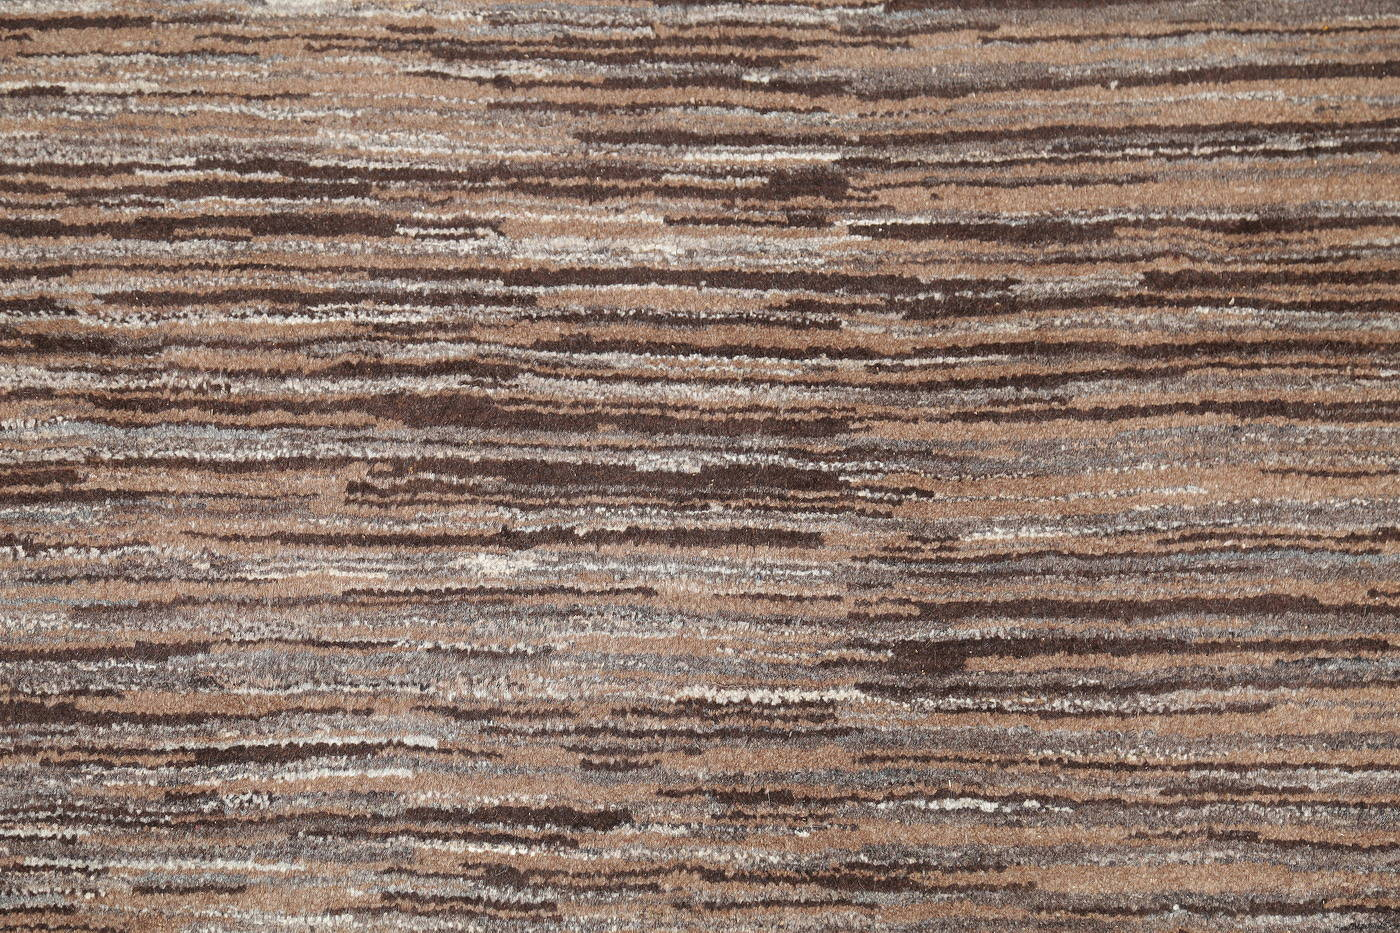 Hand-Knotted Striped Contemporary Gabbeh Shiraz Persian Area Rug Wool 4x5